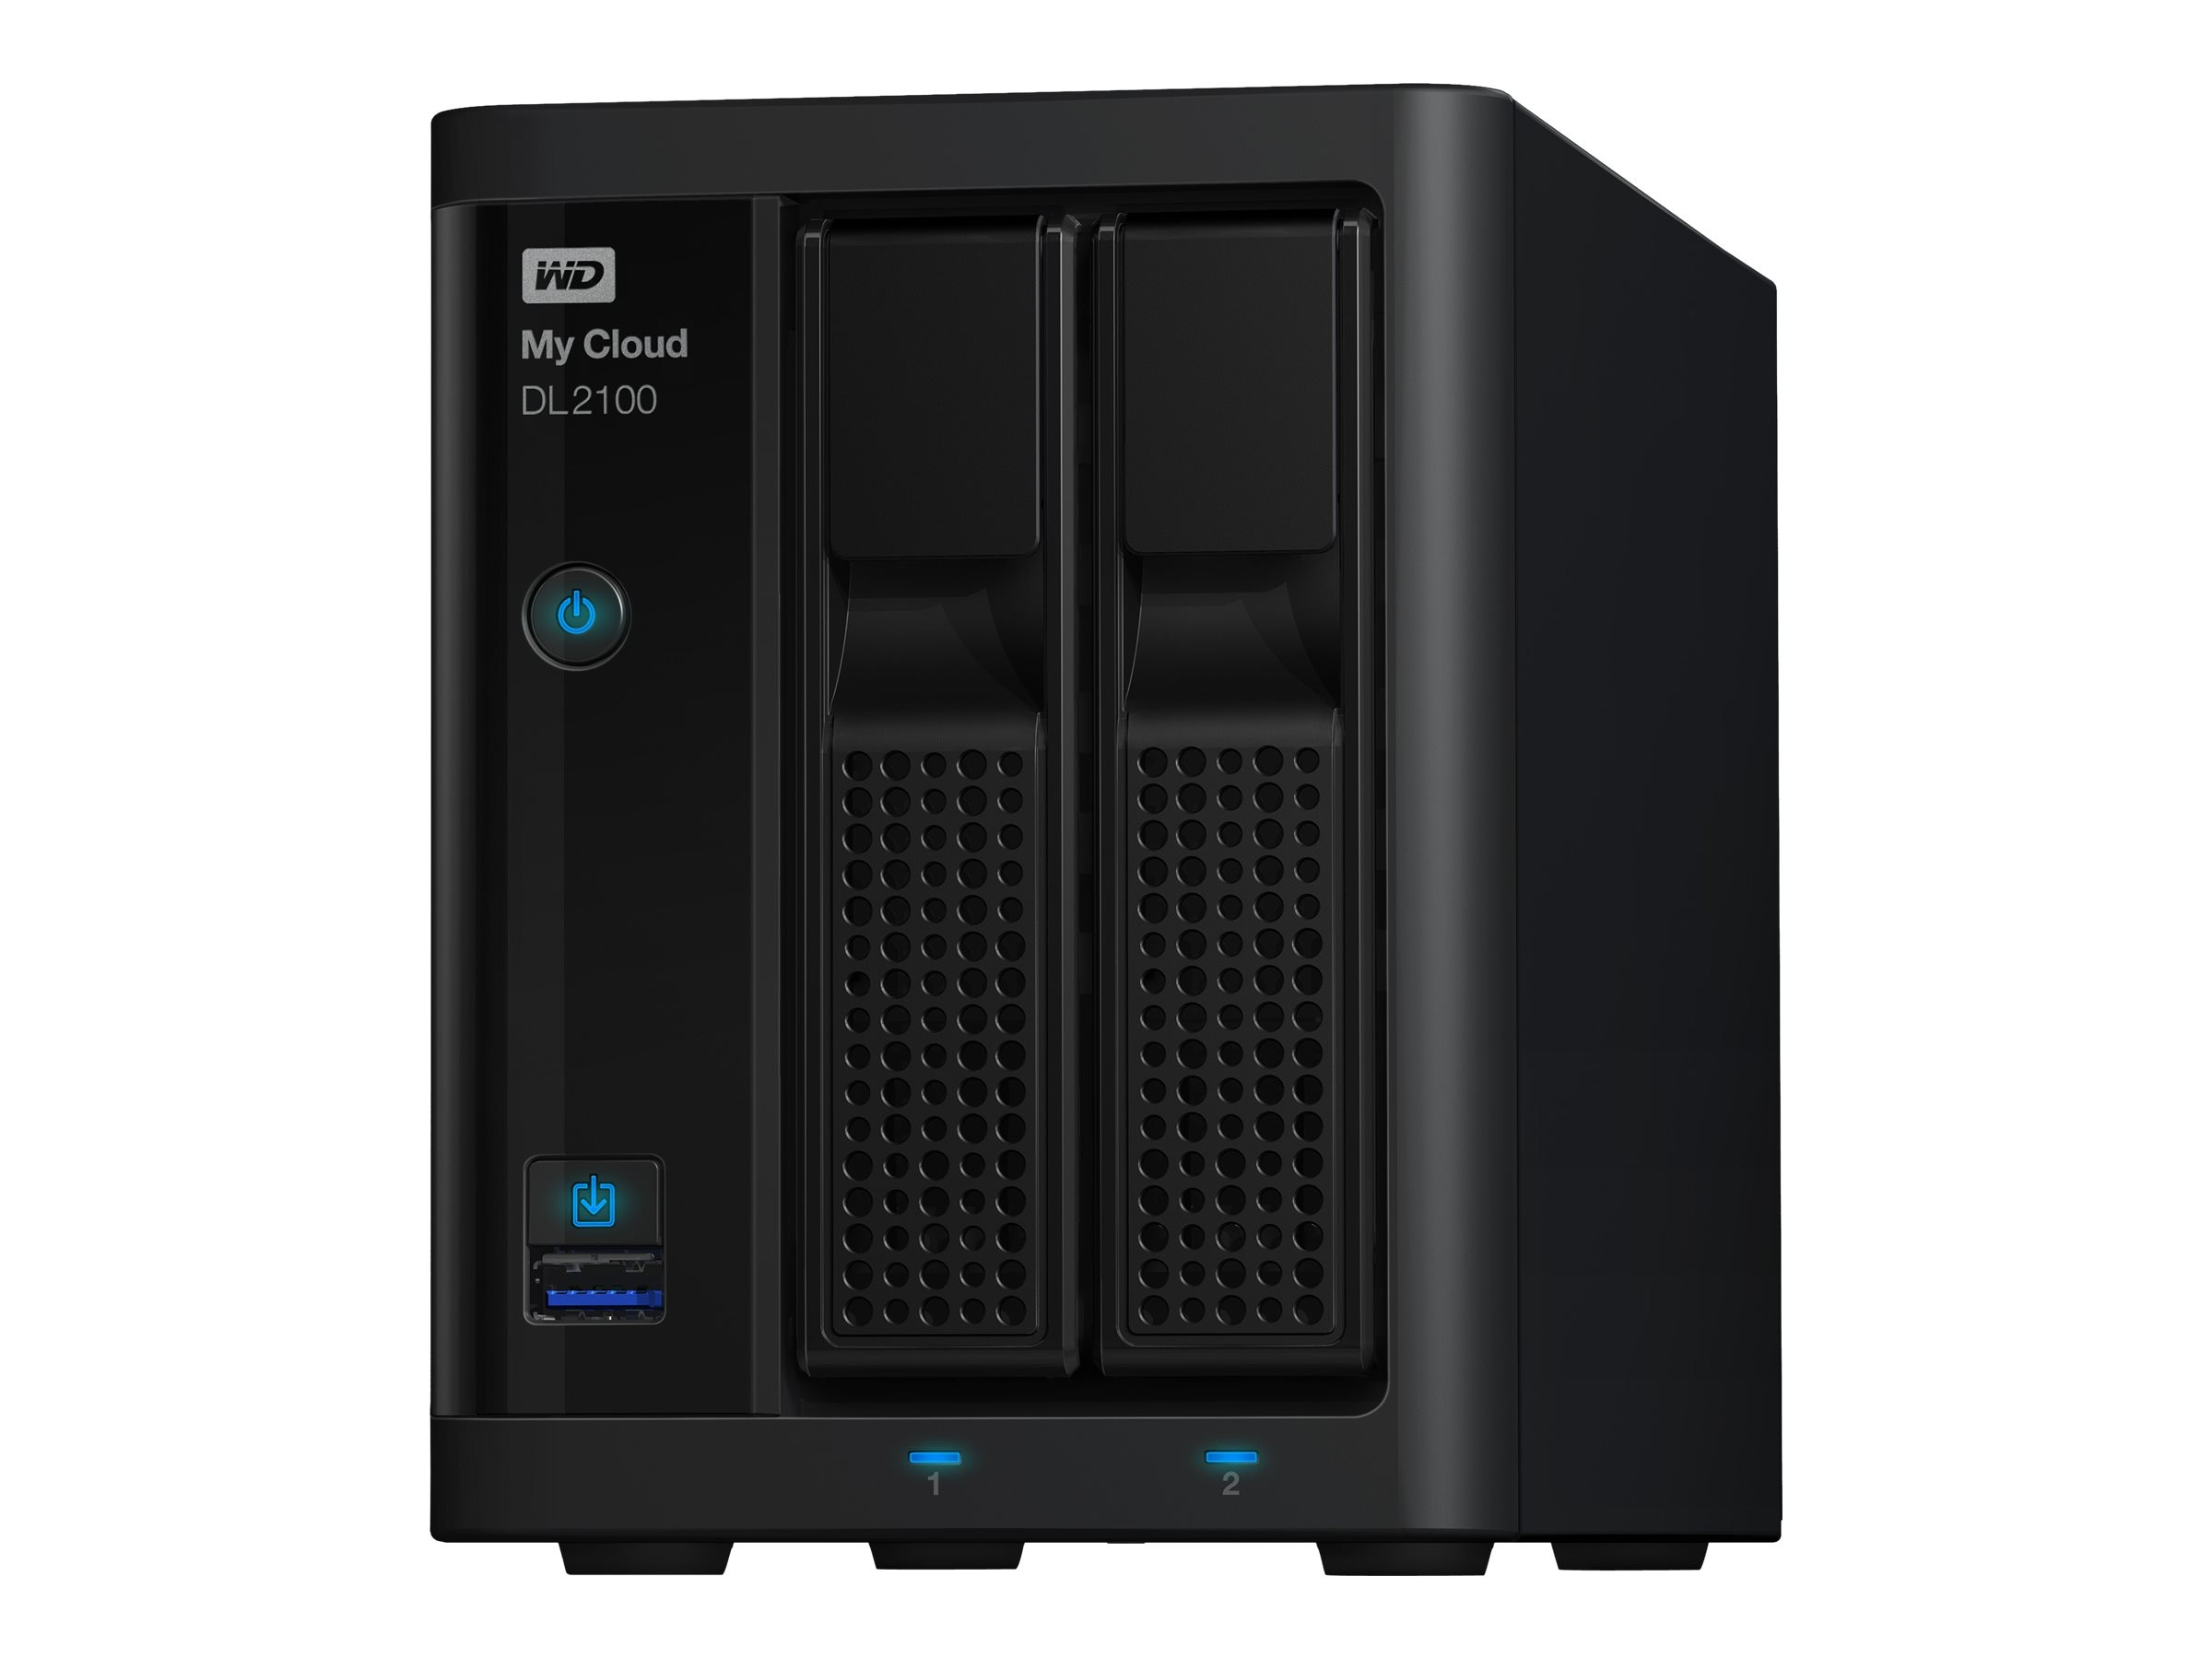 WD My Cloud DL2100 Network Attached Storage - Diskless